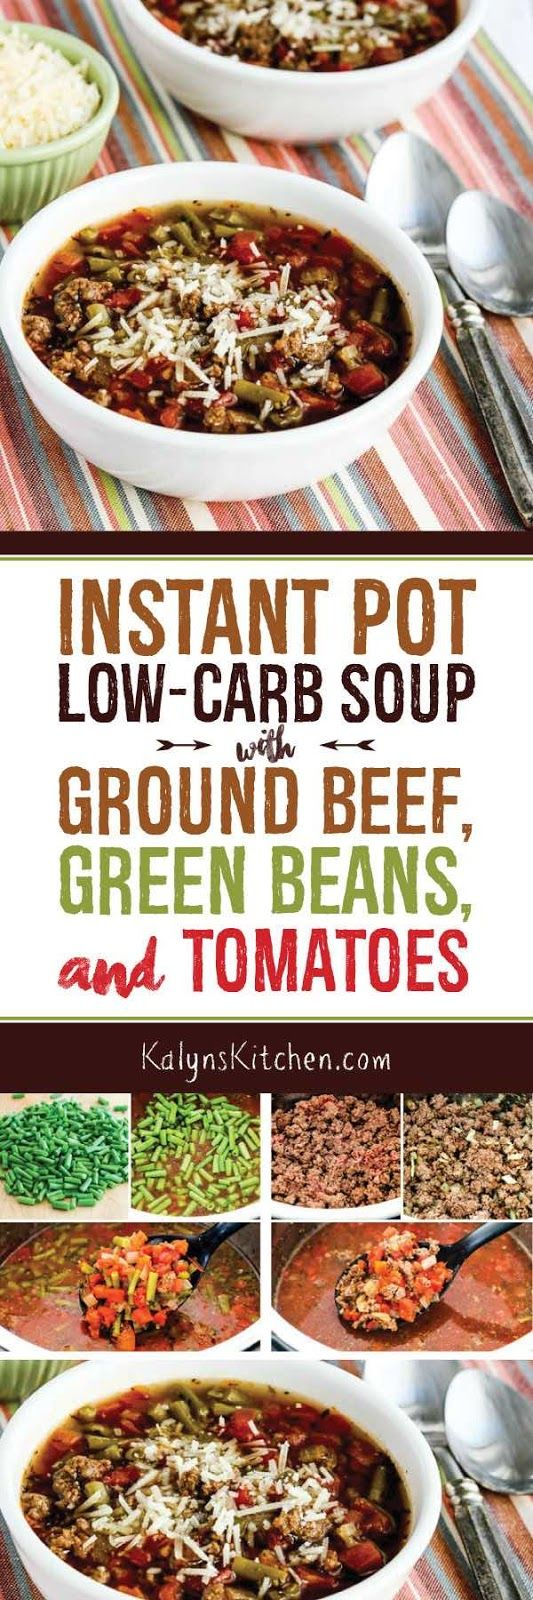 Use the Instant Pot or another pressure cooker to make this delicious  Low-Carb Soup with Ground Beef, Green Beans, and Tomatoes, or make it on the stove if you haven't quite gotten into pressure cookers yet! This delicious soup is also gluten-free and South Beach Diet Phase One, and if you omit the optional cheese it can be Paleo or Whole 30. [found on KalynsKitchen.com] #InstantPotSoup #LowCarbSoup #InstantPotLowCarbSoup